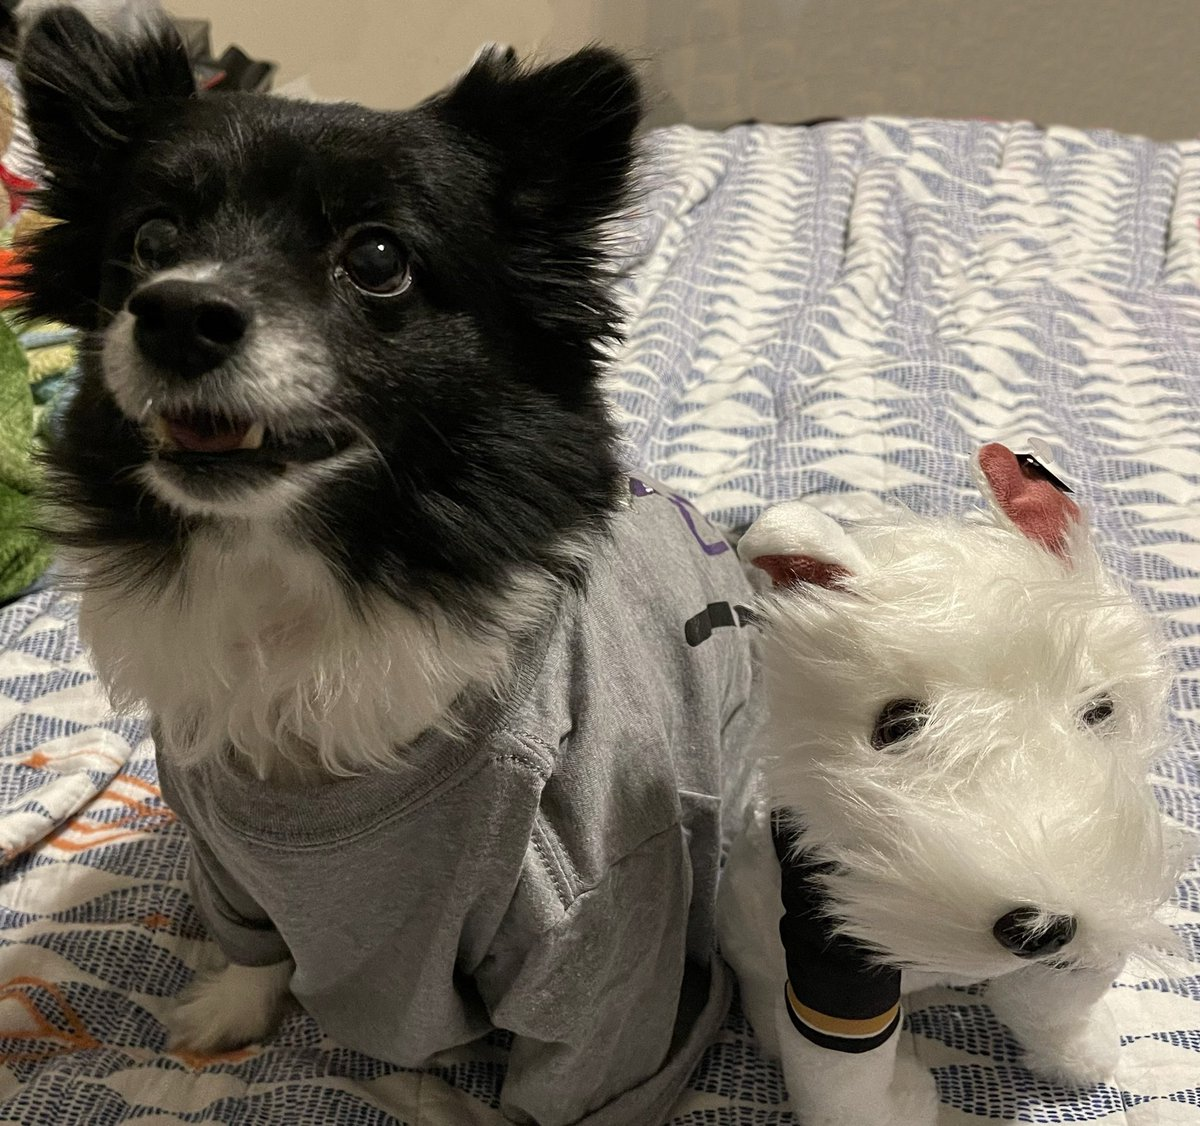 Then, Biped Daddy had gotten me my friends, @BarkAndreFurry & @DekeHenriFurry, T-Shirt to support their charity @TRFdotORG . #SlayCancerWithDragons